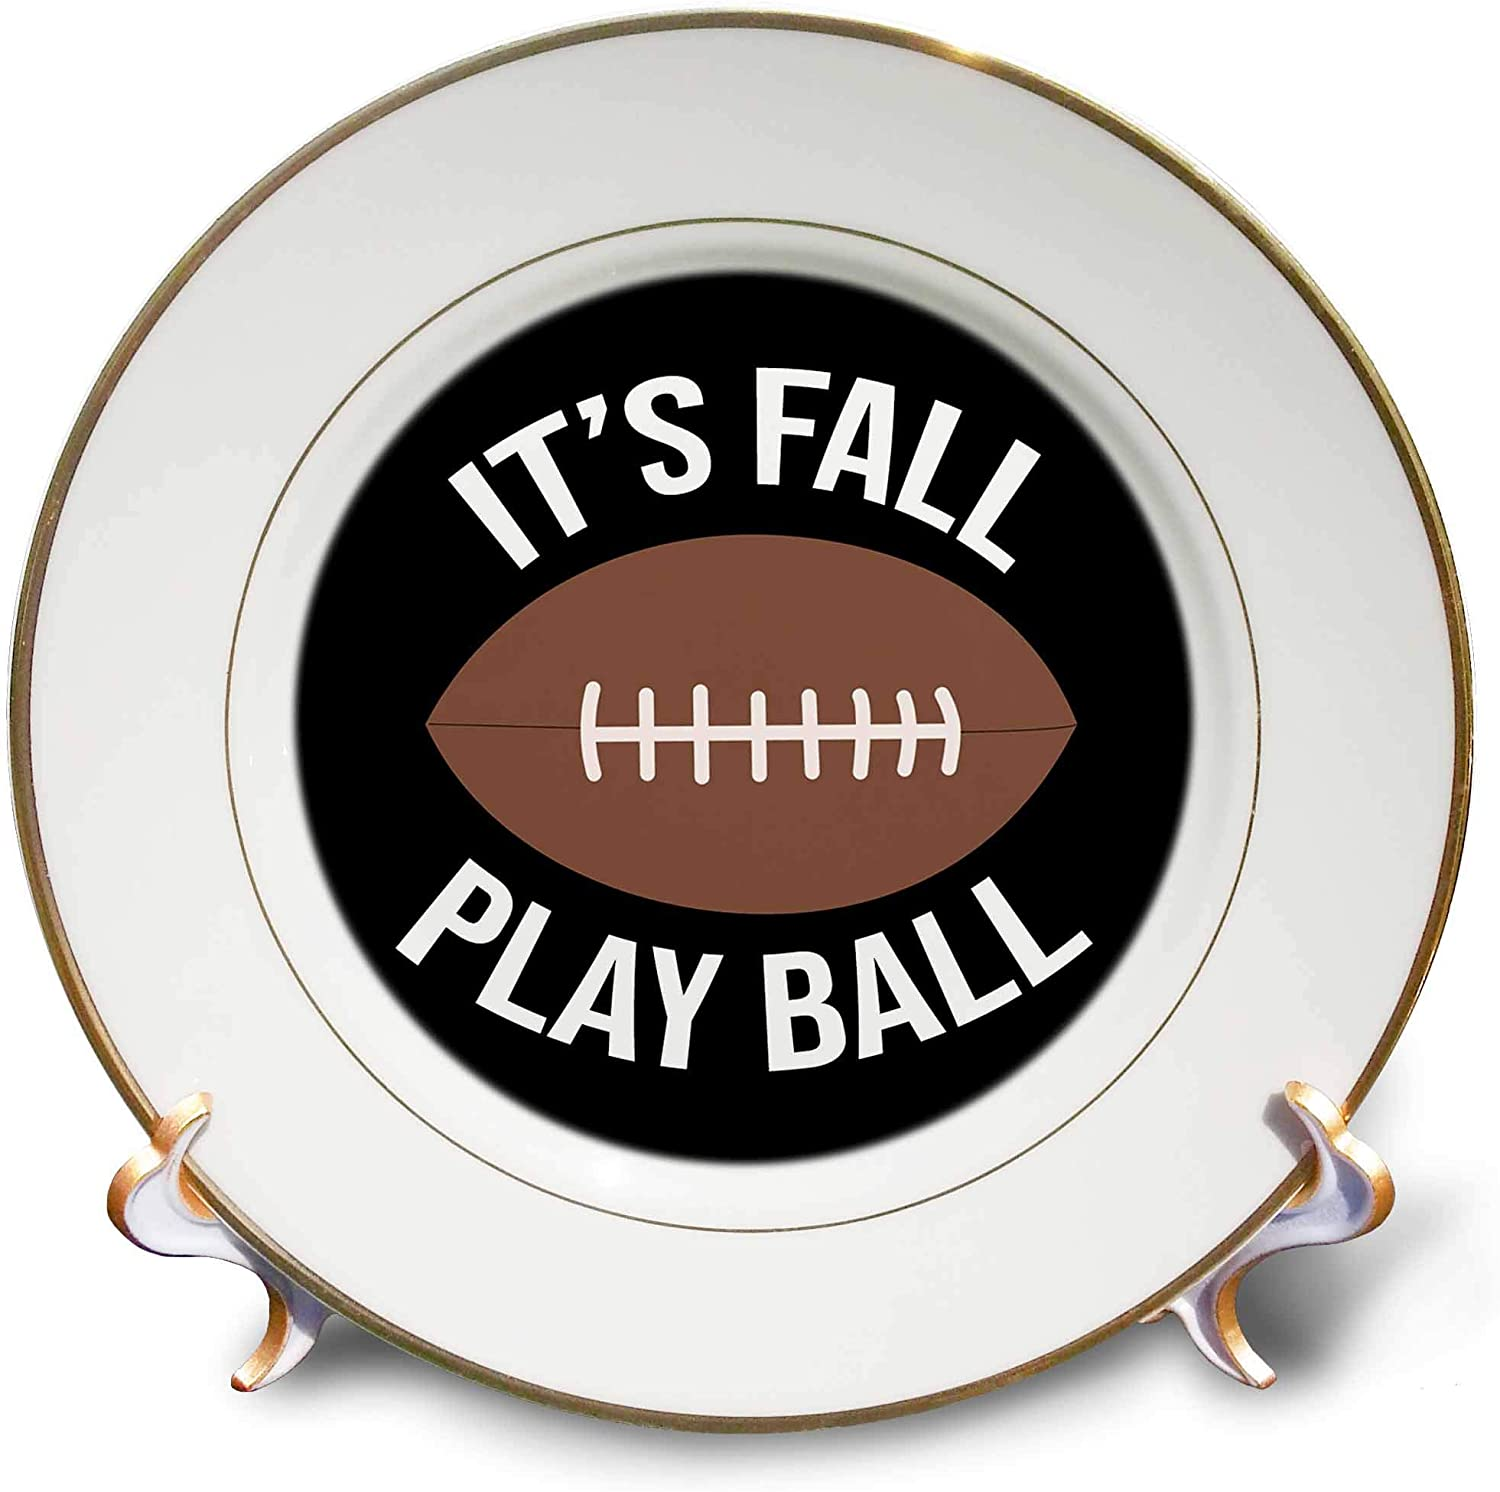 3dRose Stamp City - Typography - Its Fall Play Ball with Football. White Letters on Black Background. - 8 inch Porcelain Plate (cp_324883_1)